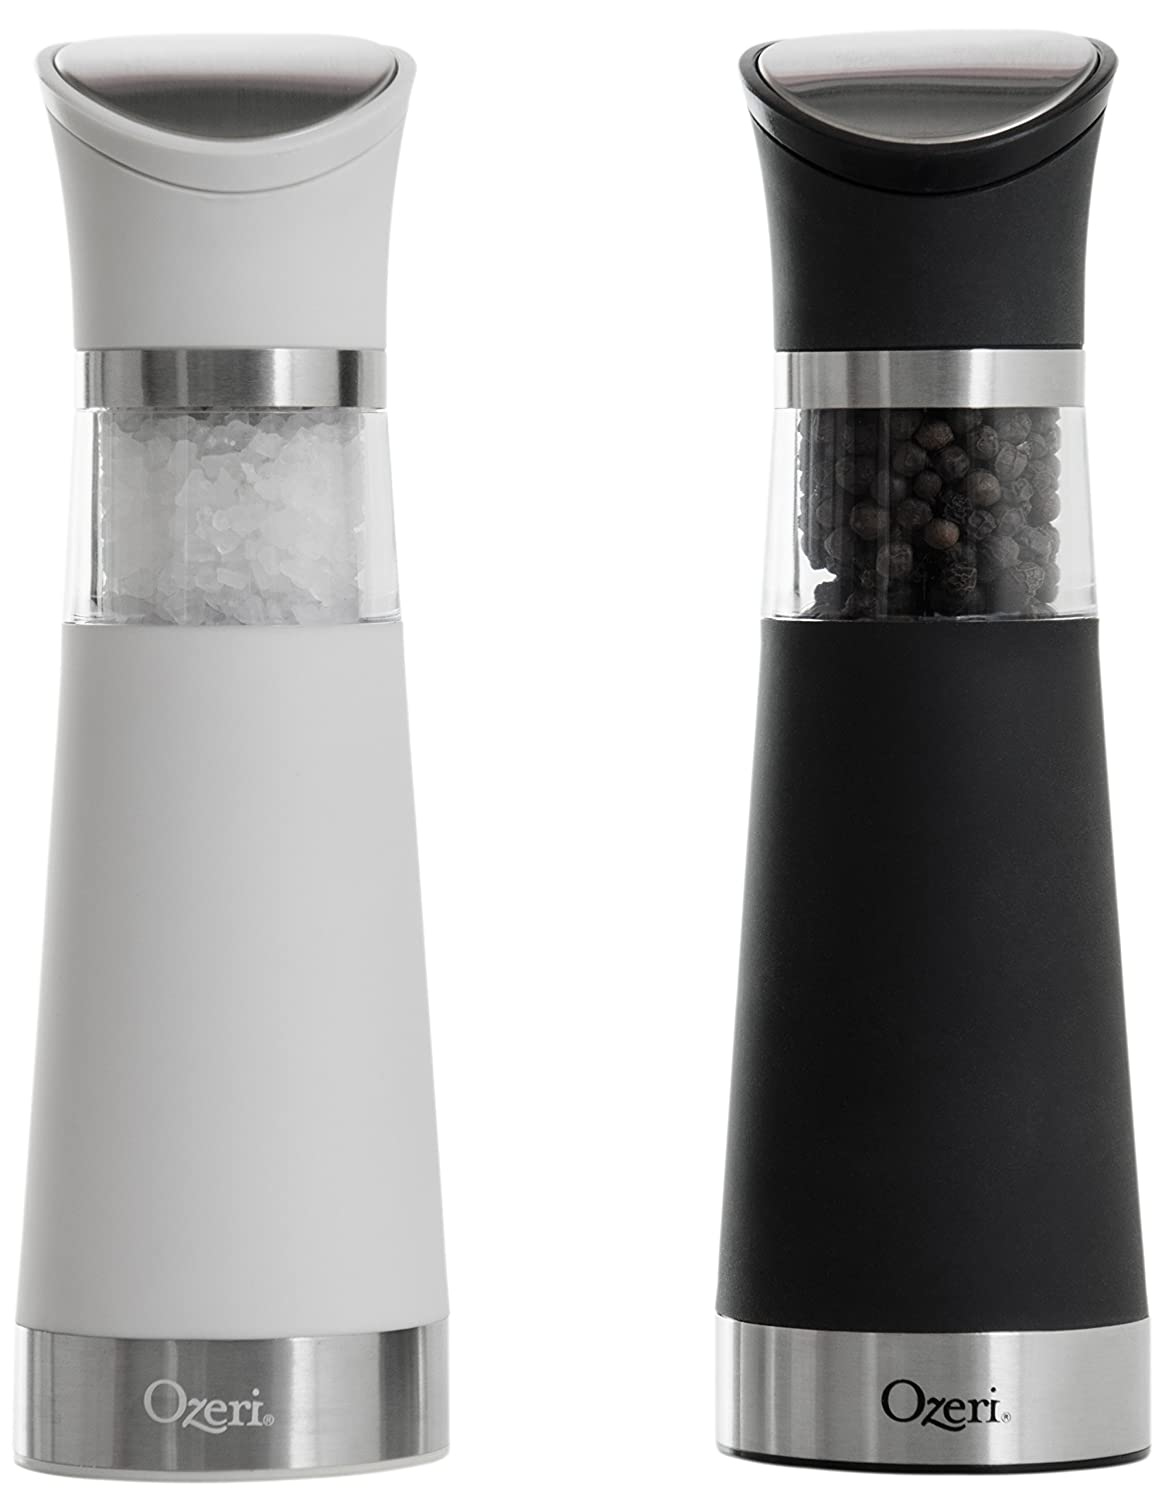 Ozeri Graviti Pro Electric Salt and Pepper Grinder Set, BPA-Free OZG8